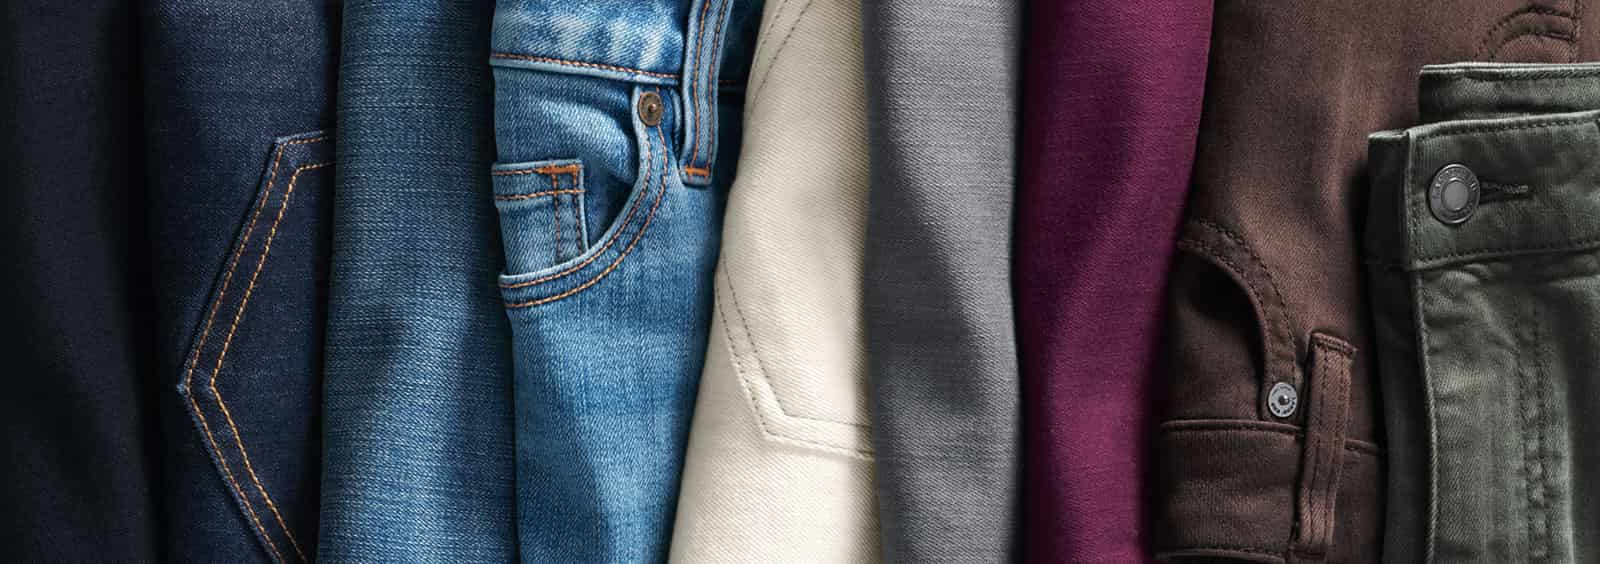 Straight-Leg Jeans That Are Perfect for the Workplace | Lands' End